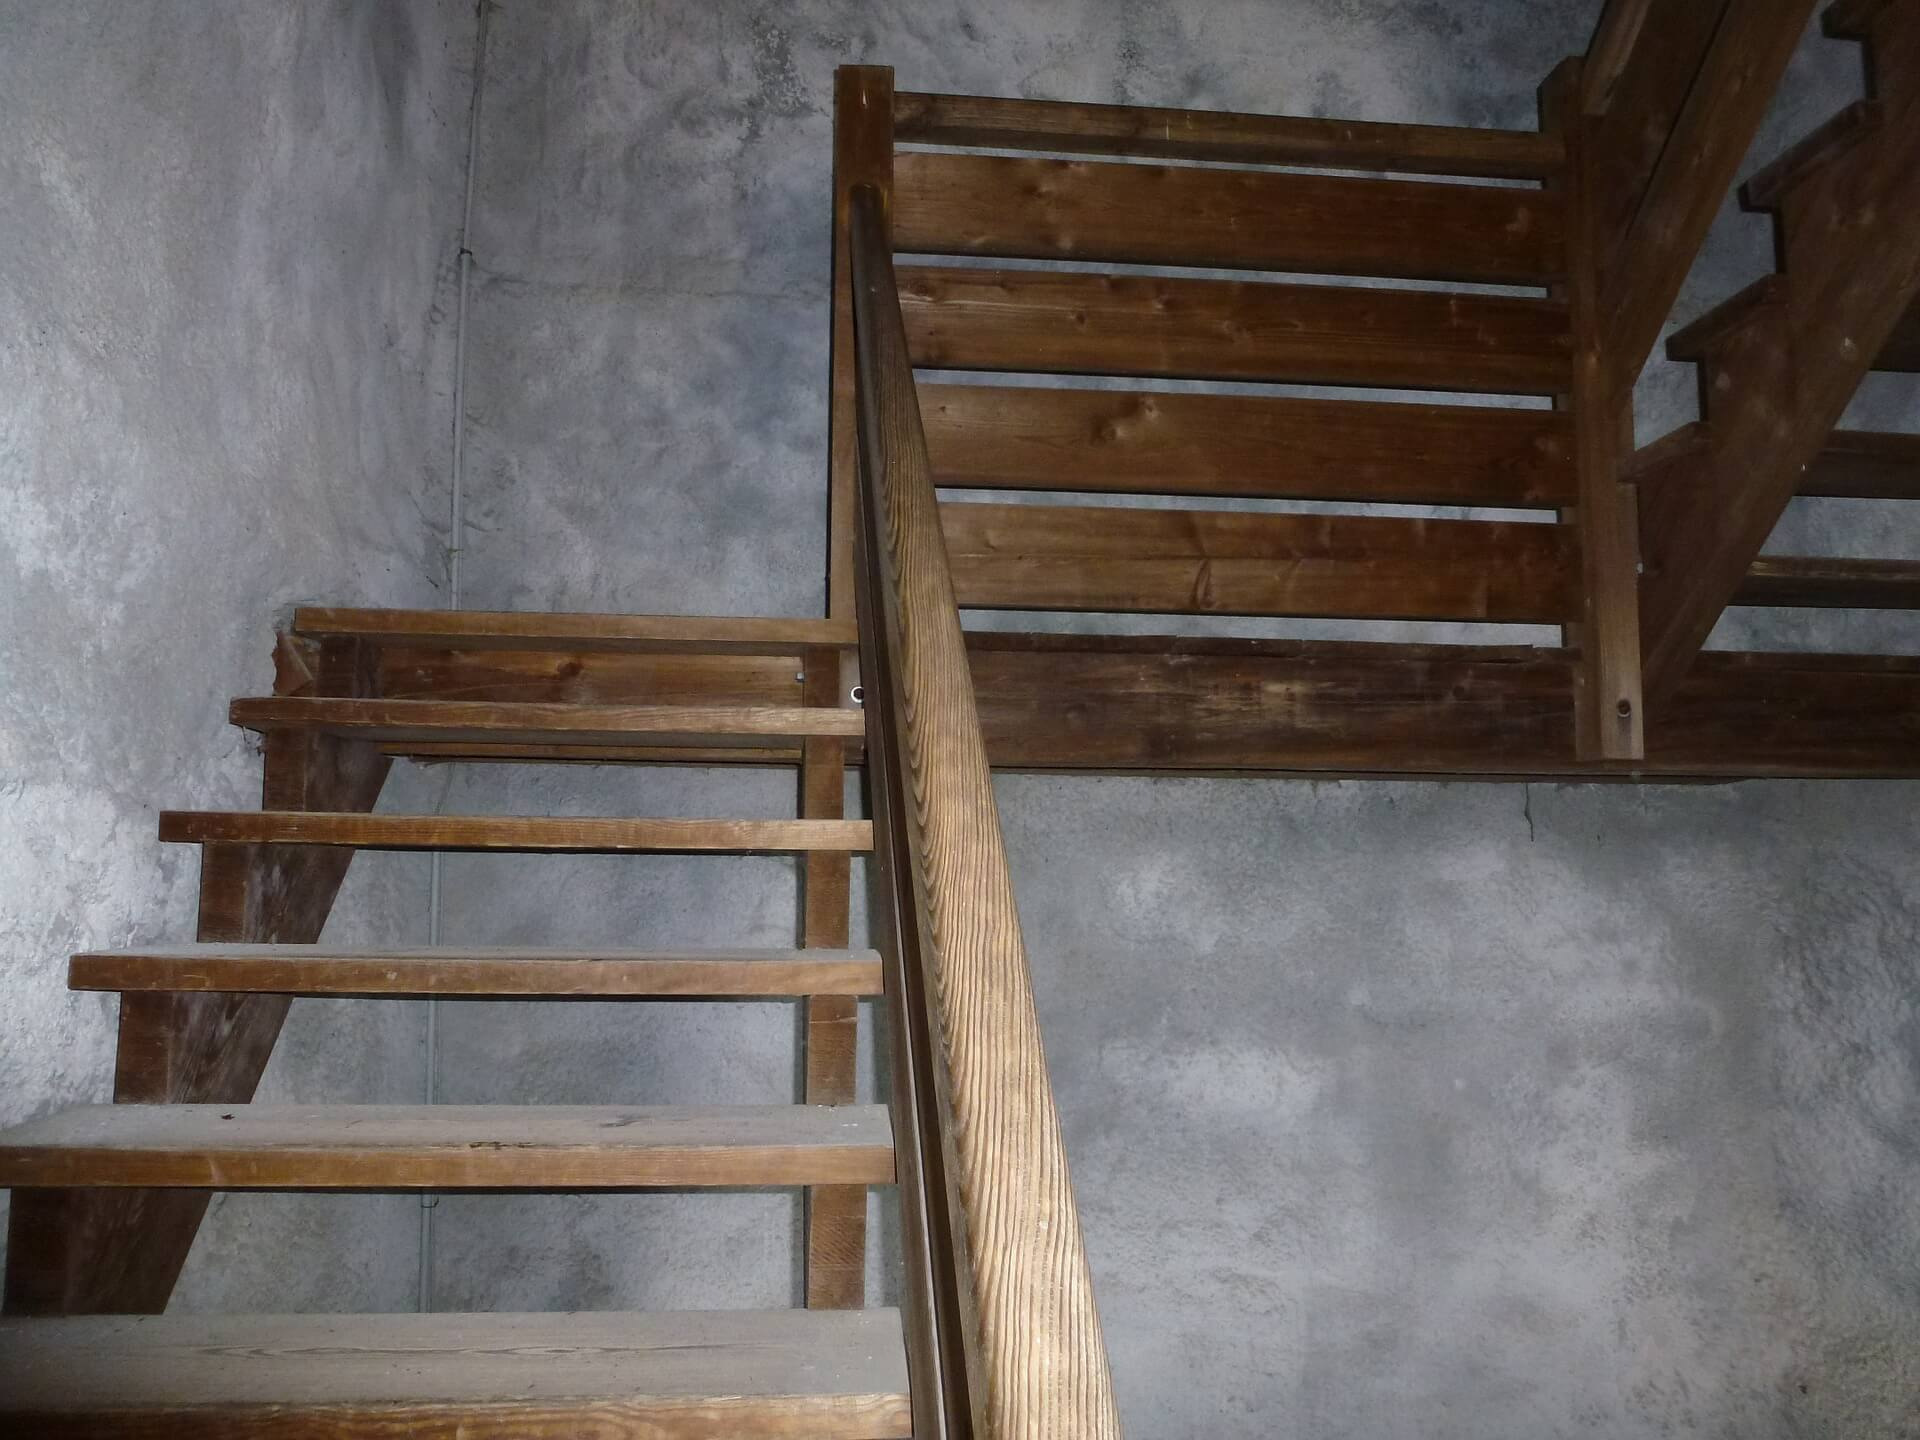 stairs-480901_1920